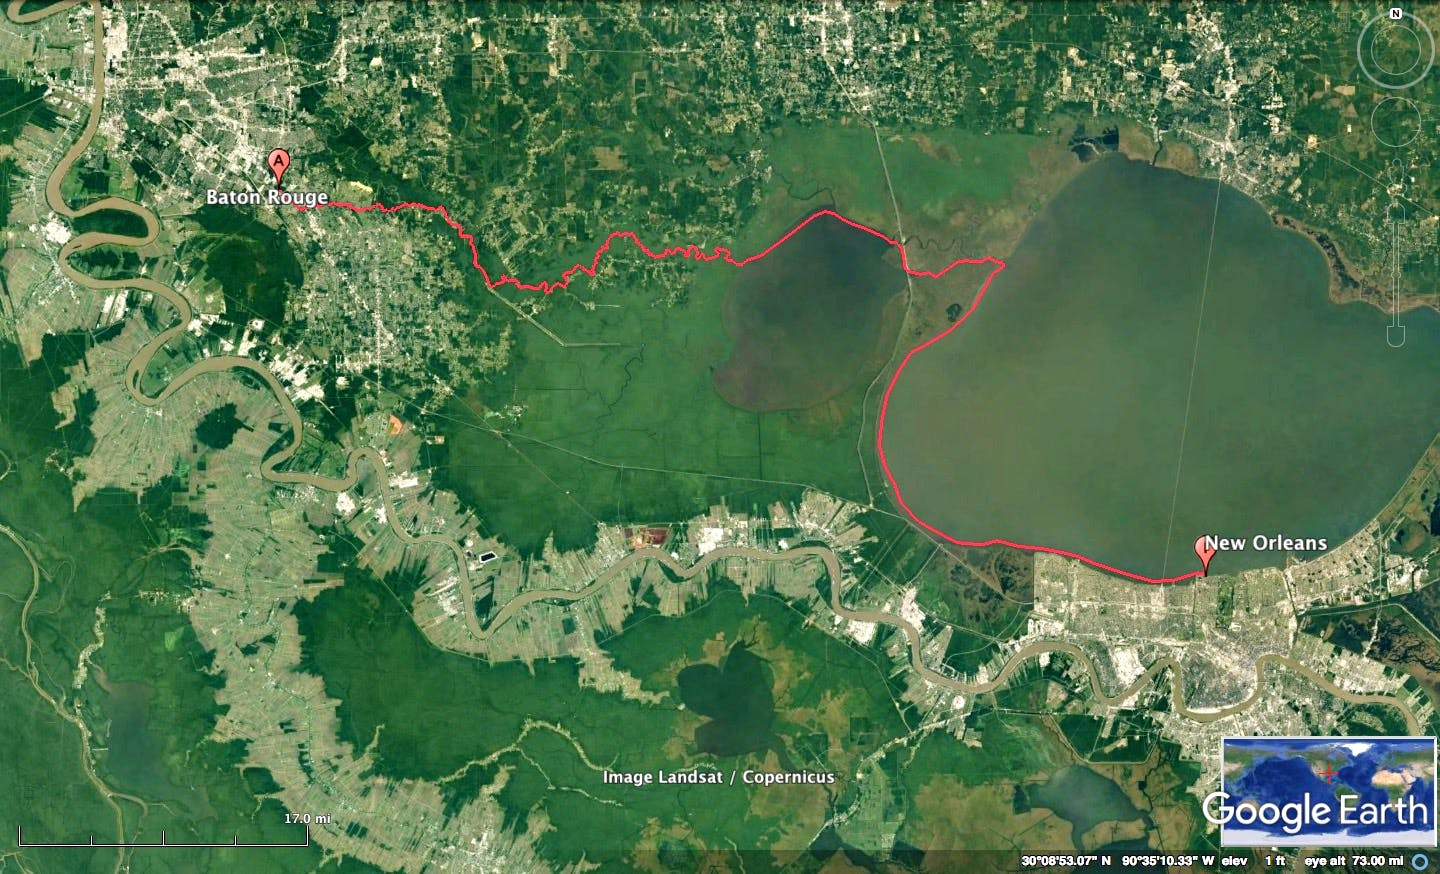 New Orleans to Baton Rogue Kayak Route